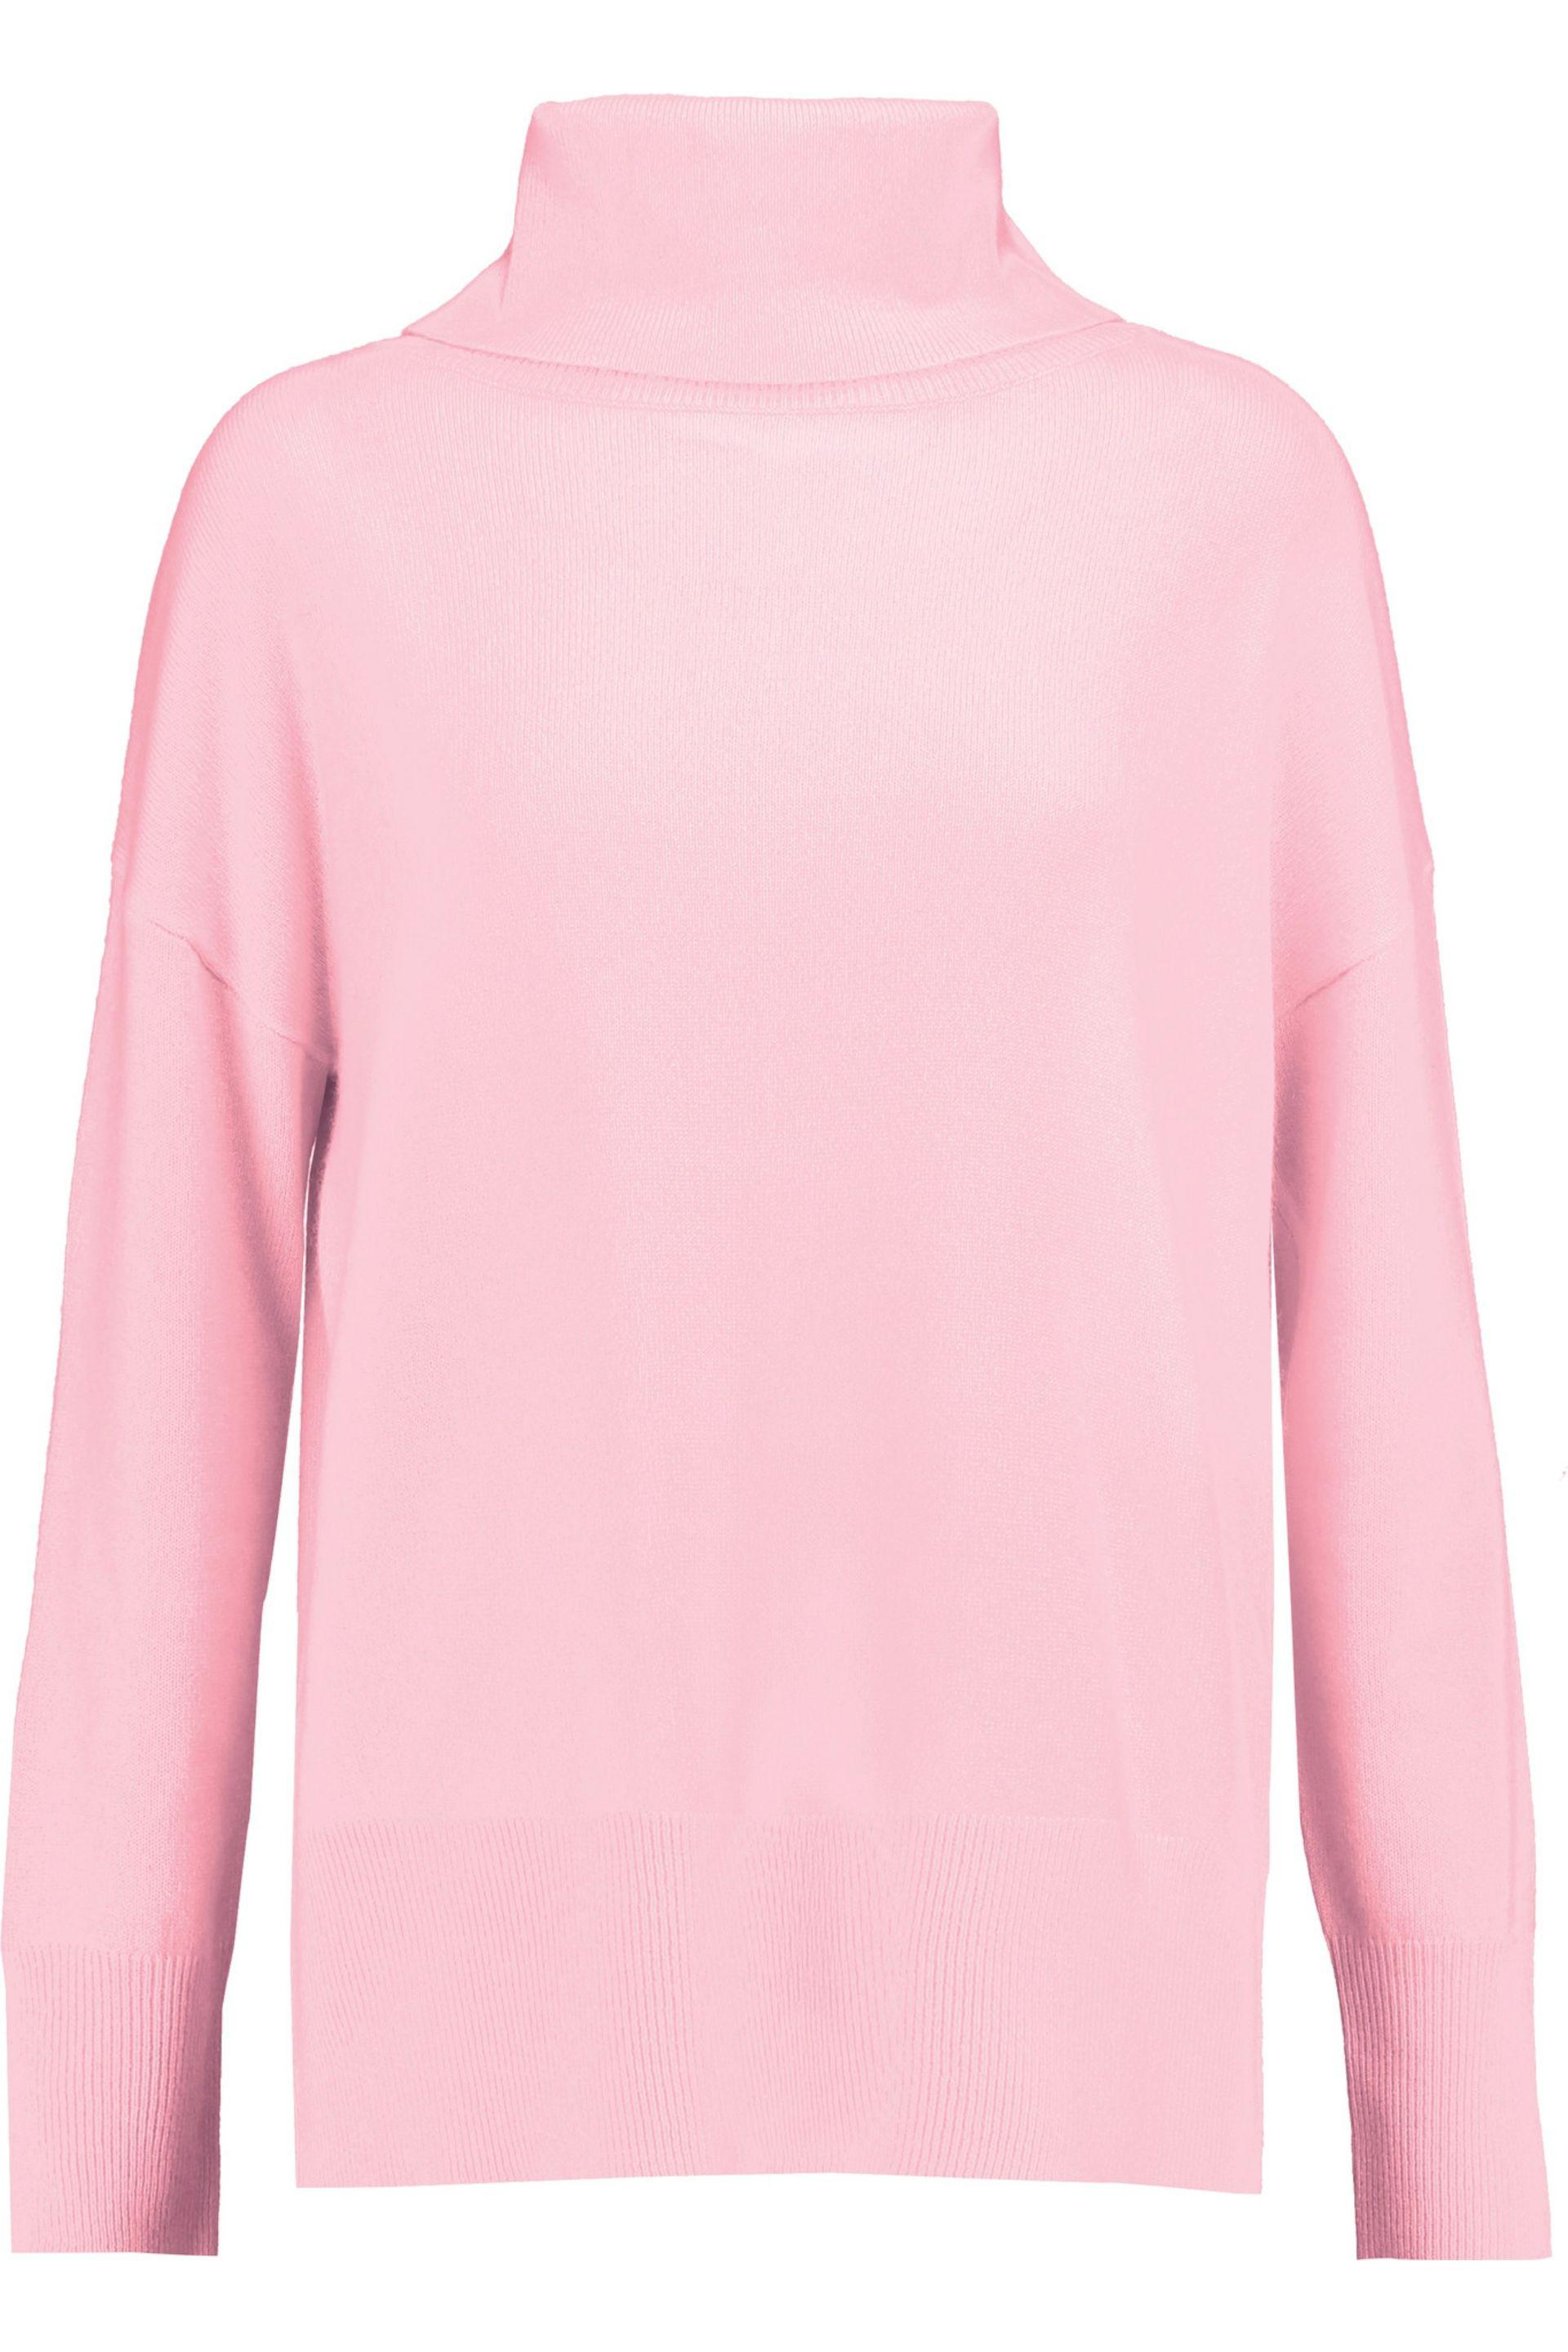 Iris & ink Grace Cashmere Turtleneck Sweater in Pink | Lyst